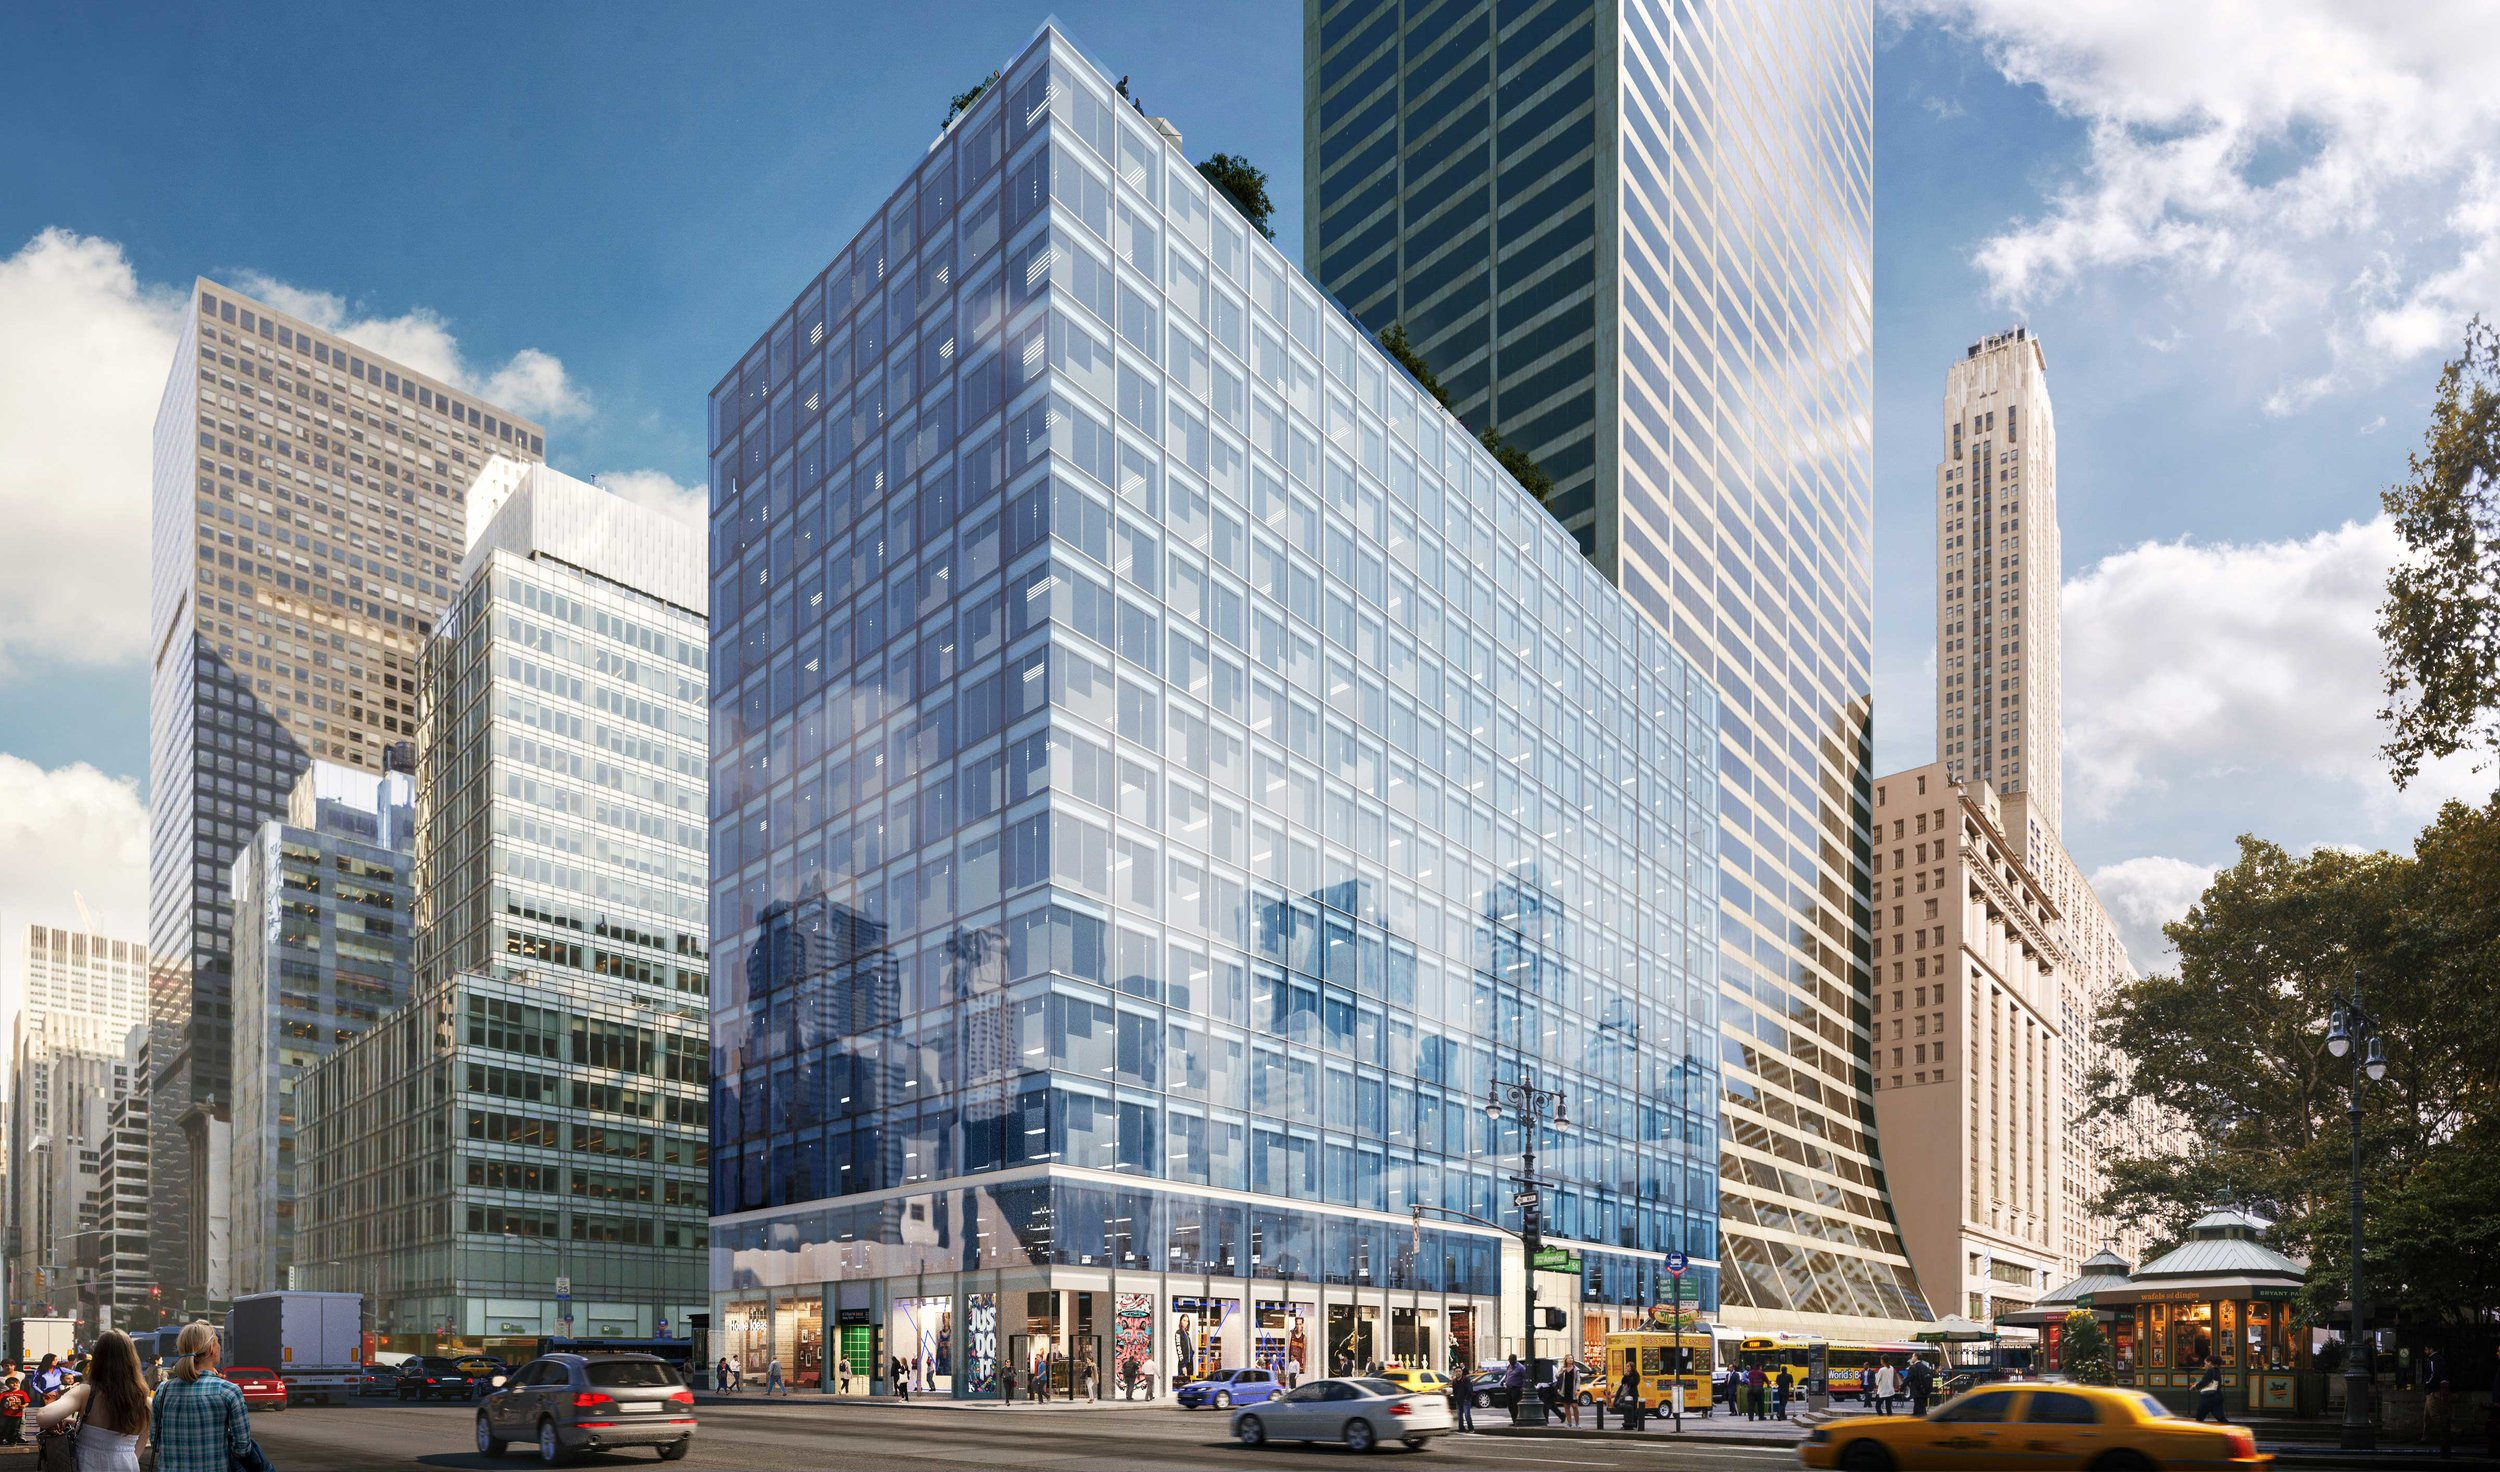 1101 AVENUE OF THE AMERICAS - BROOKFIELD